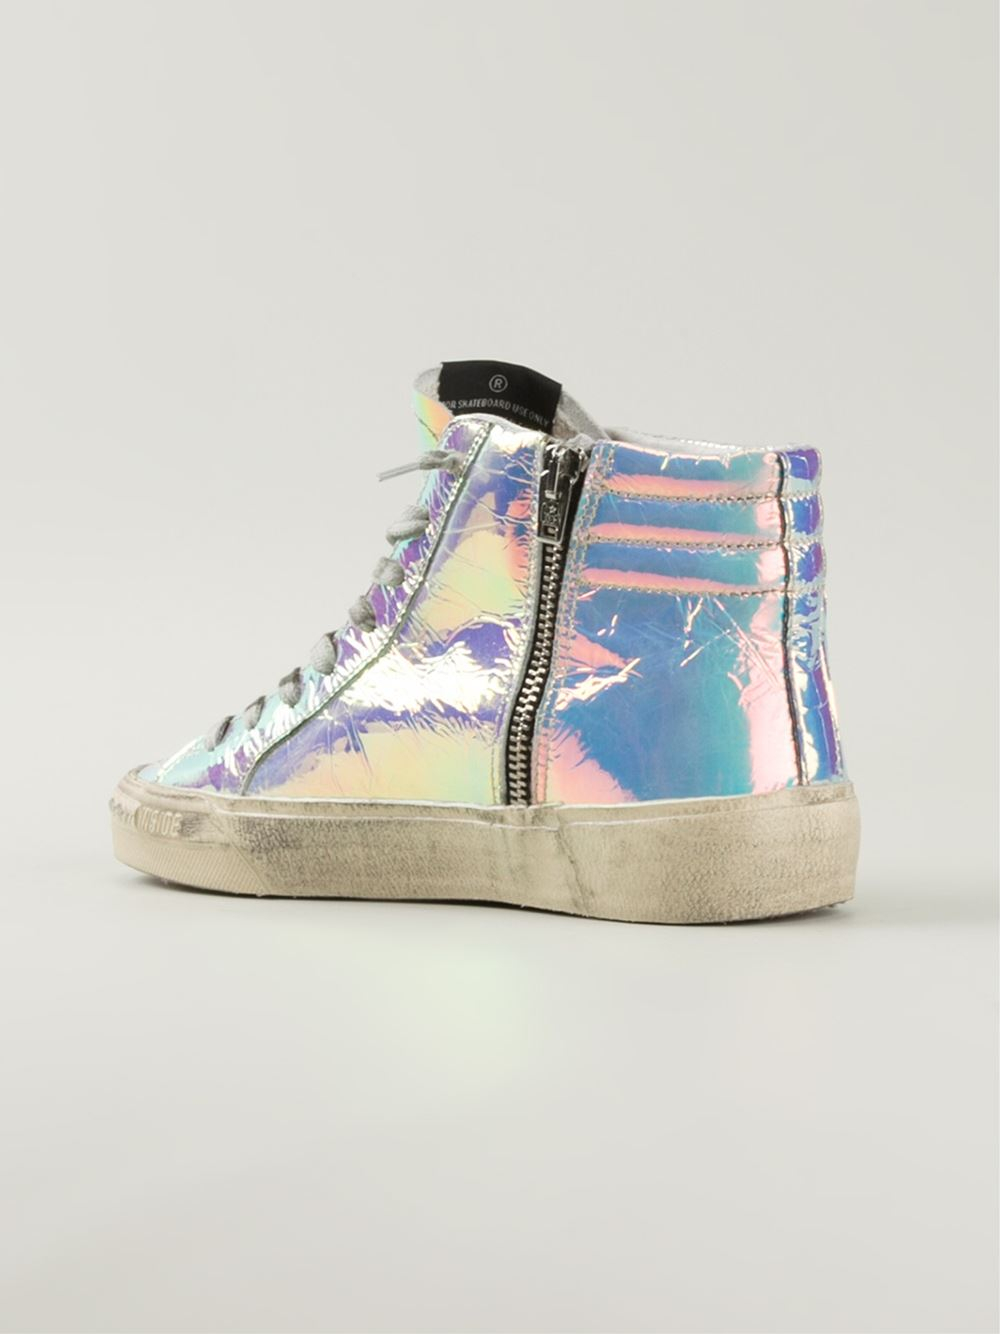 Golden Goose Womens Superstar Leather Sneakers in White - Golden Goose Outlet